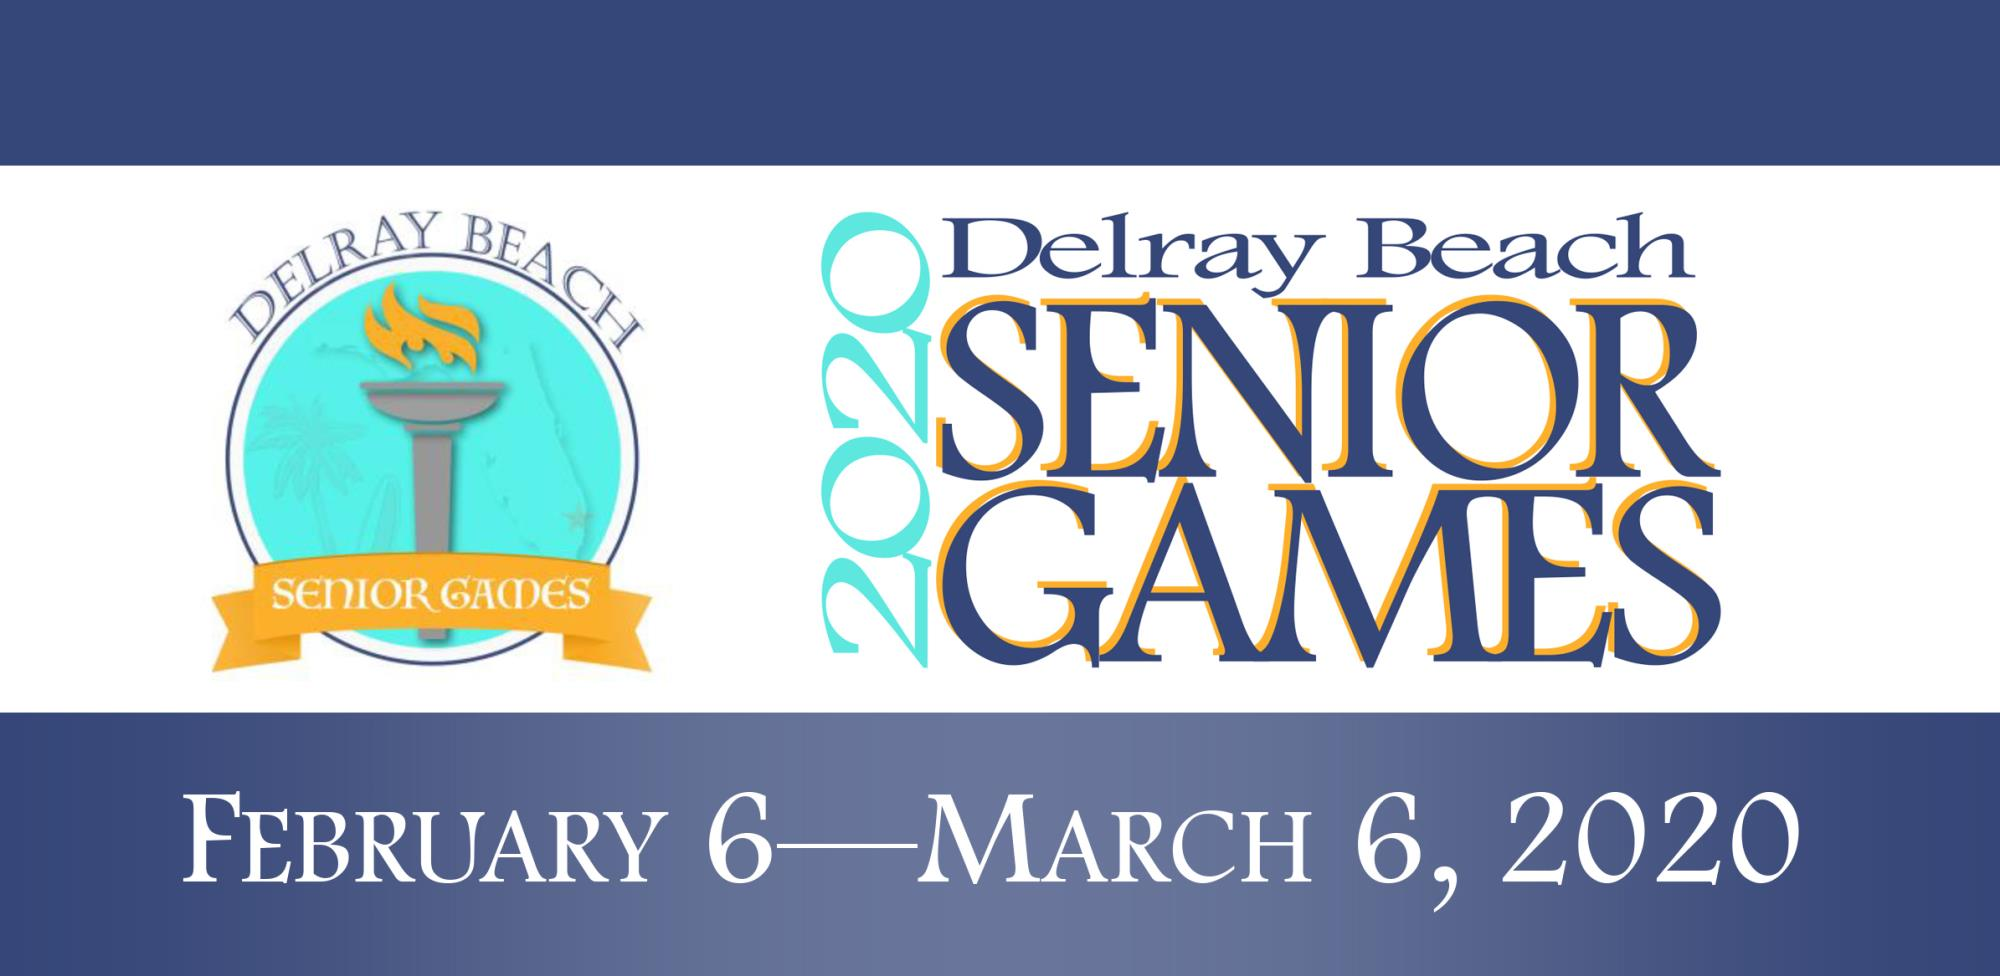 Senior games flyer 2020 jpg